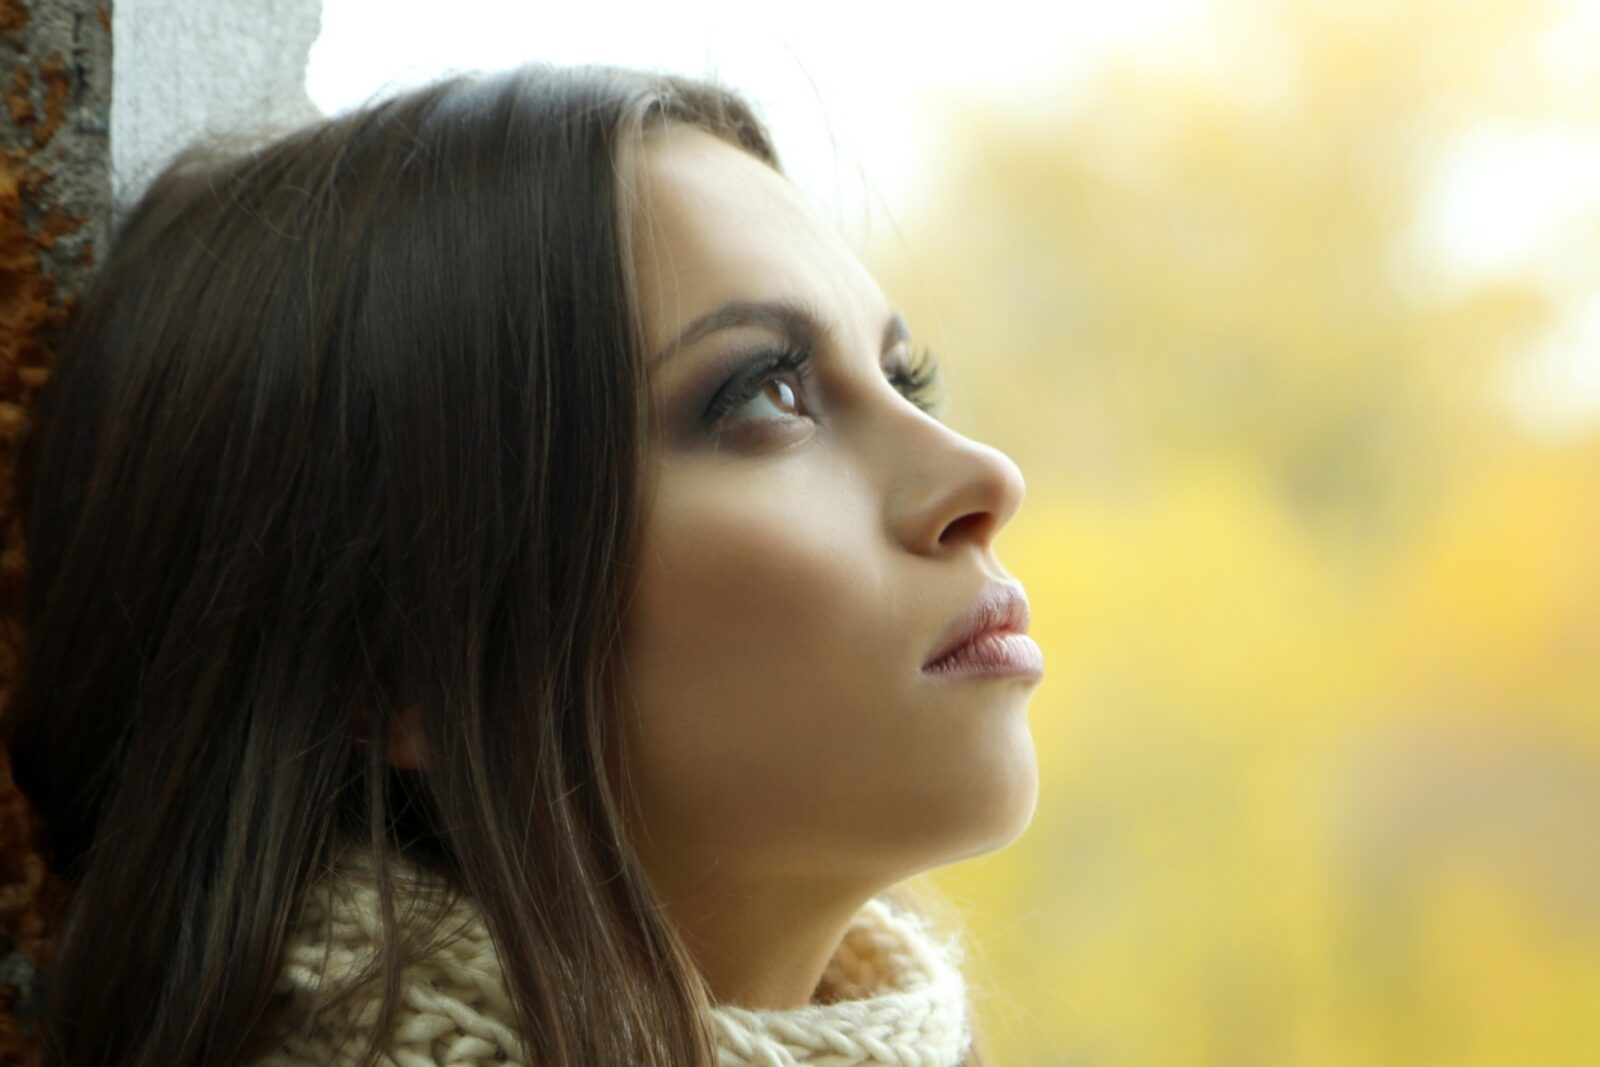 Young woman thinking about making changes in her life